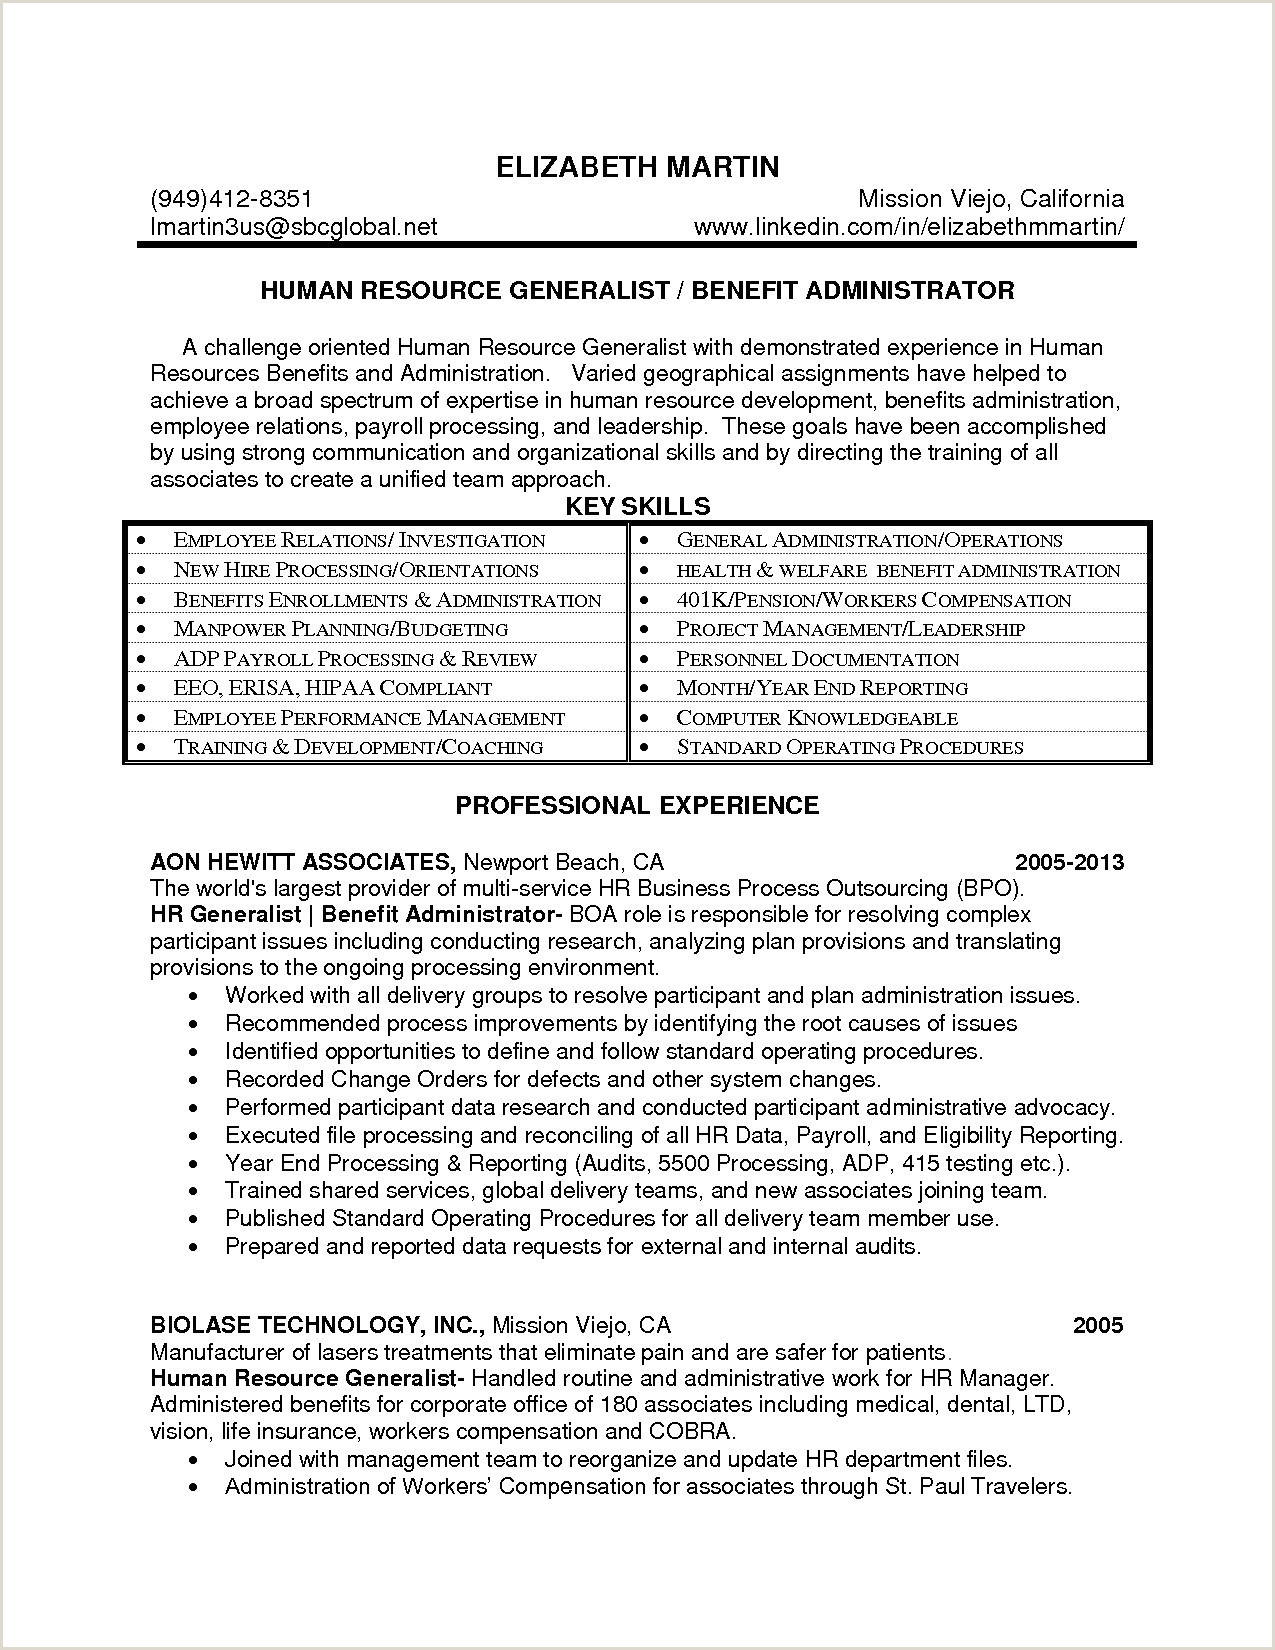 Human Resource Manager Resume Examples Lovely Human Resource Resume Sample